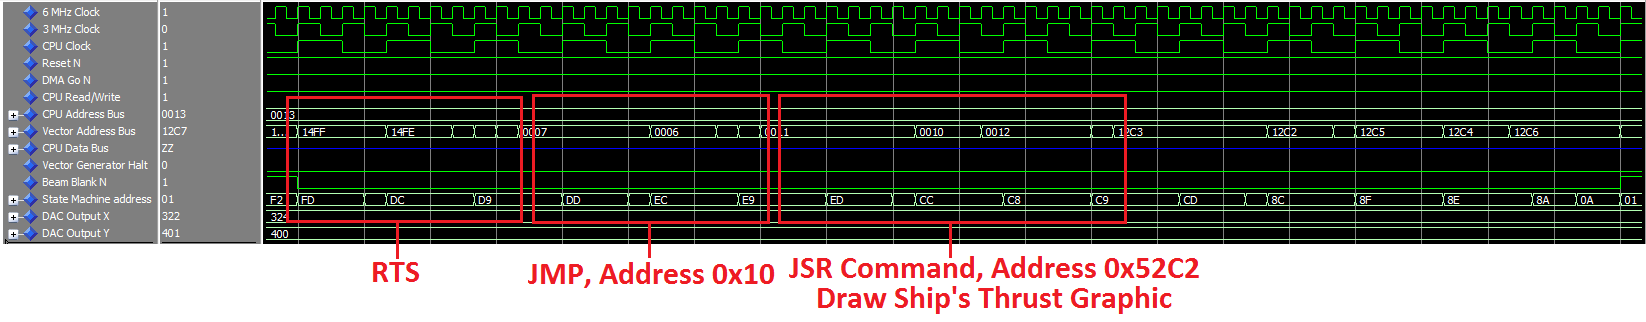 Return from using SVEC commands, test the JMP command and go to another subroutine